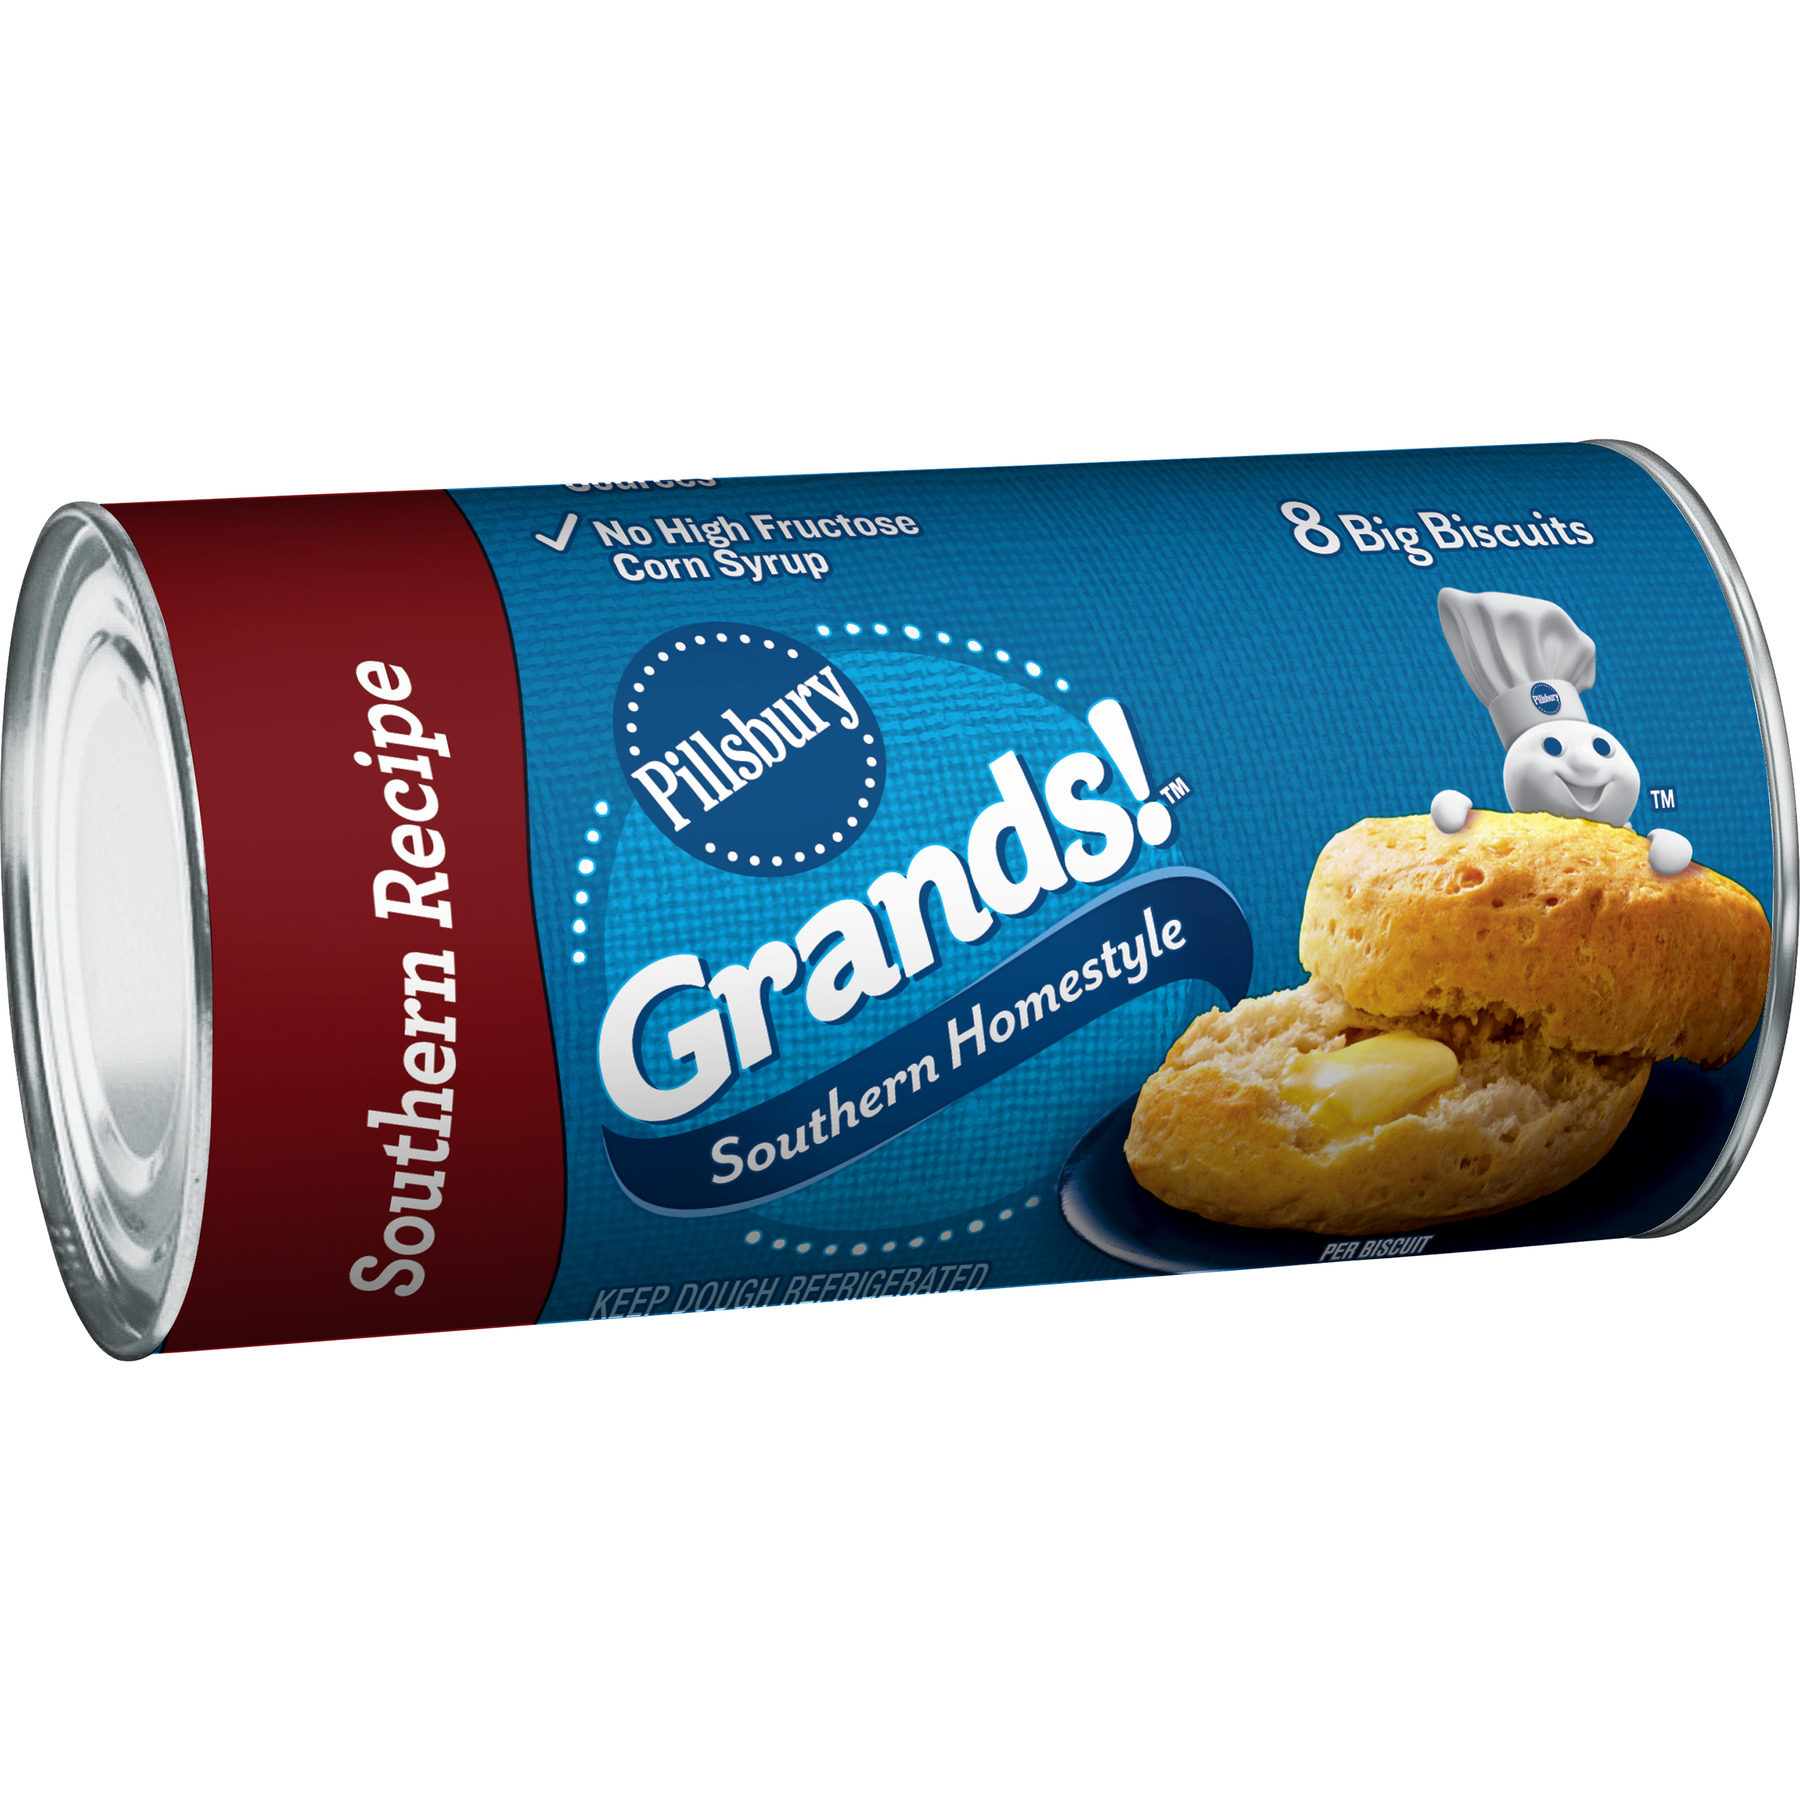 Pillsbury Grands! Southern Homestyle Biscuits,16.3 Oz., 8 Count